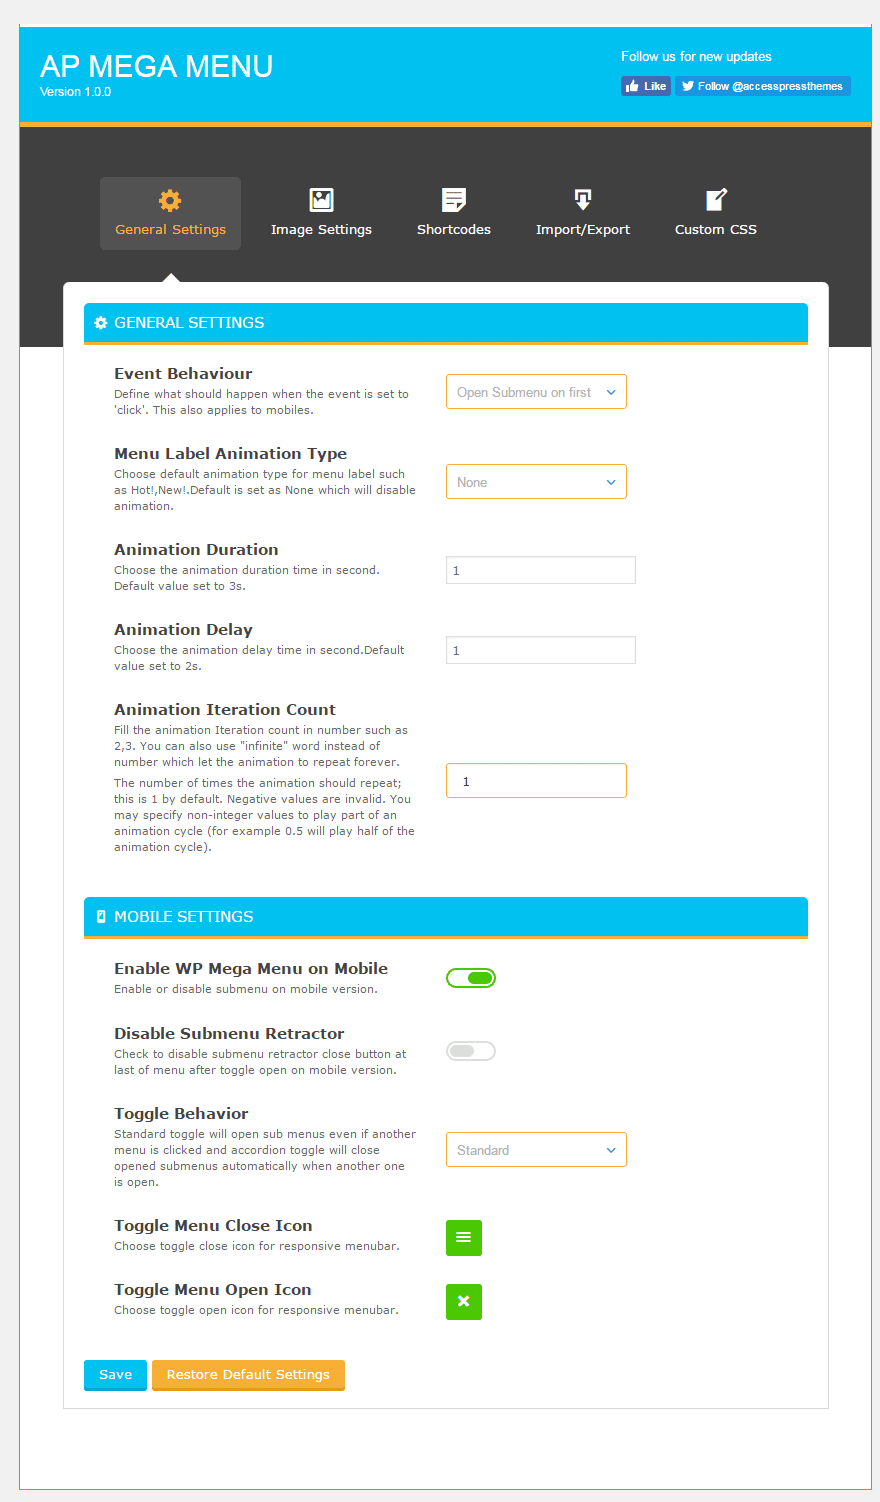 general settings 1 - How to add Mega Menu on WordPress Website Using AP Mega Menu plugin? (Step by Step Guide)